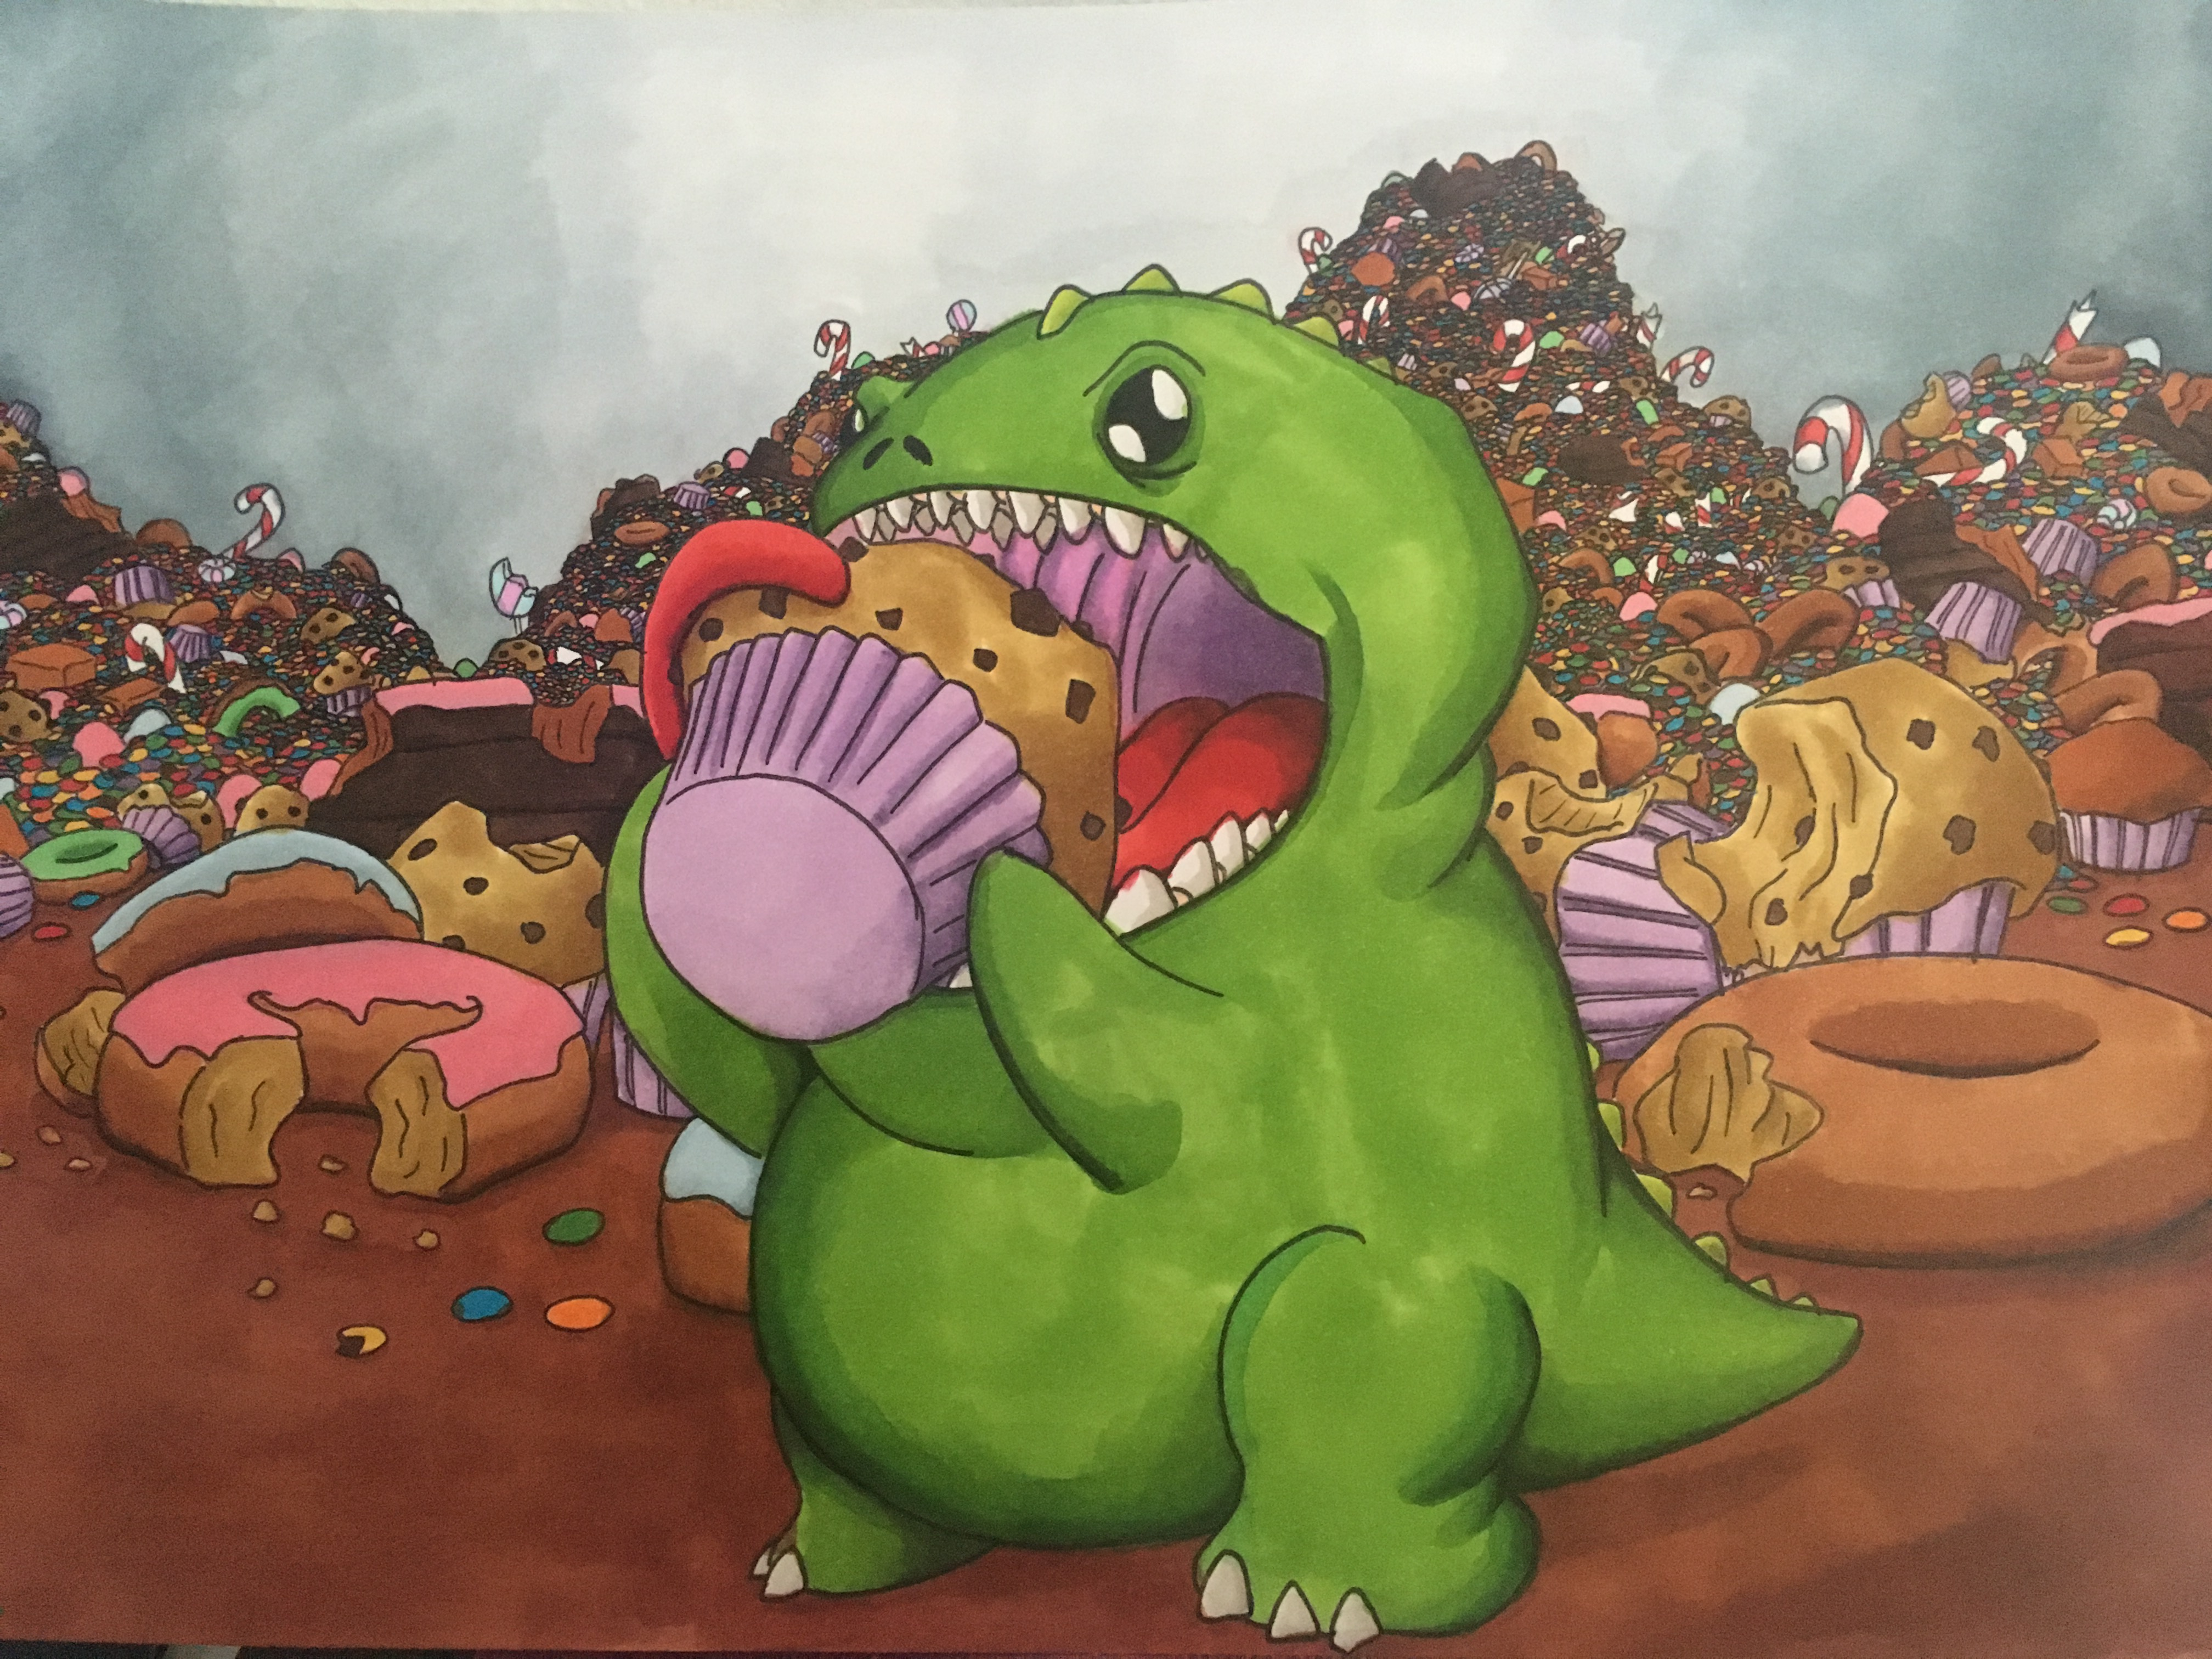 The cookie muncher